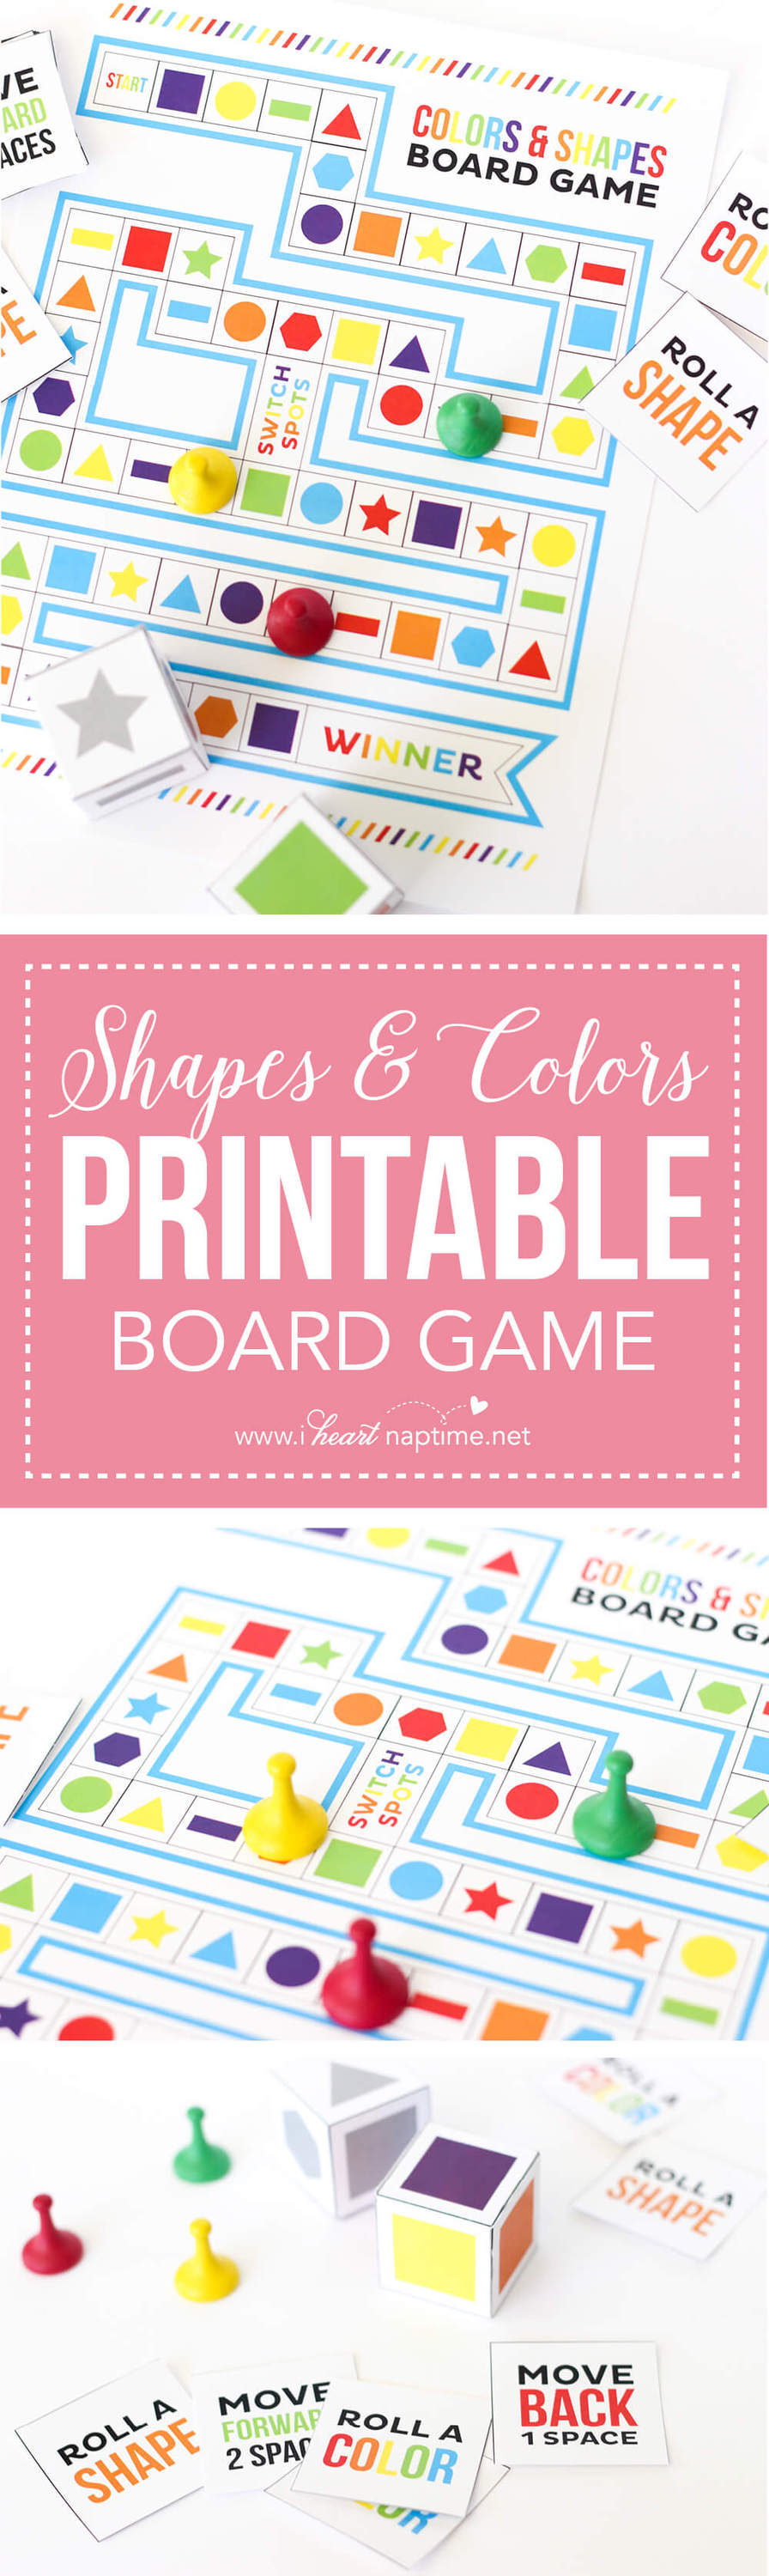 Game board colors - Shapes And Colors Printable Board Game The Perfect Summer Boredom Buster Easy To Print